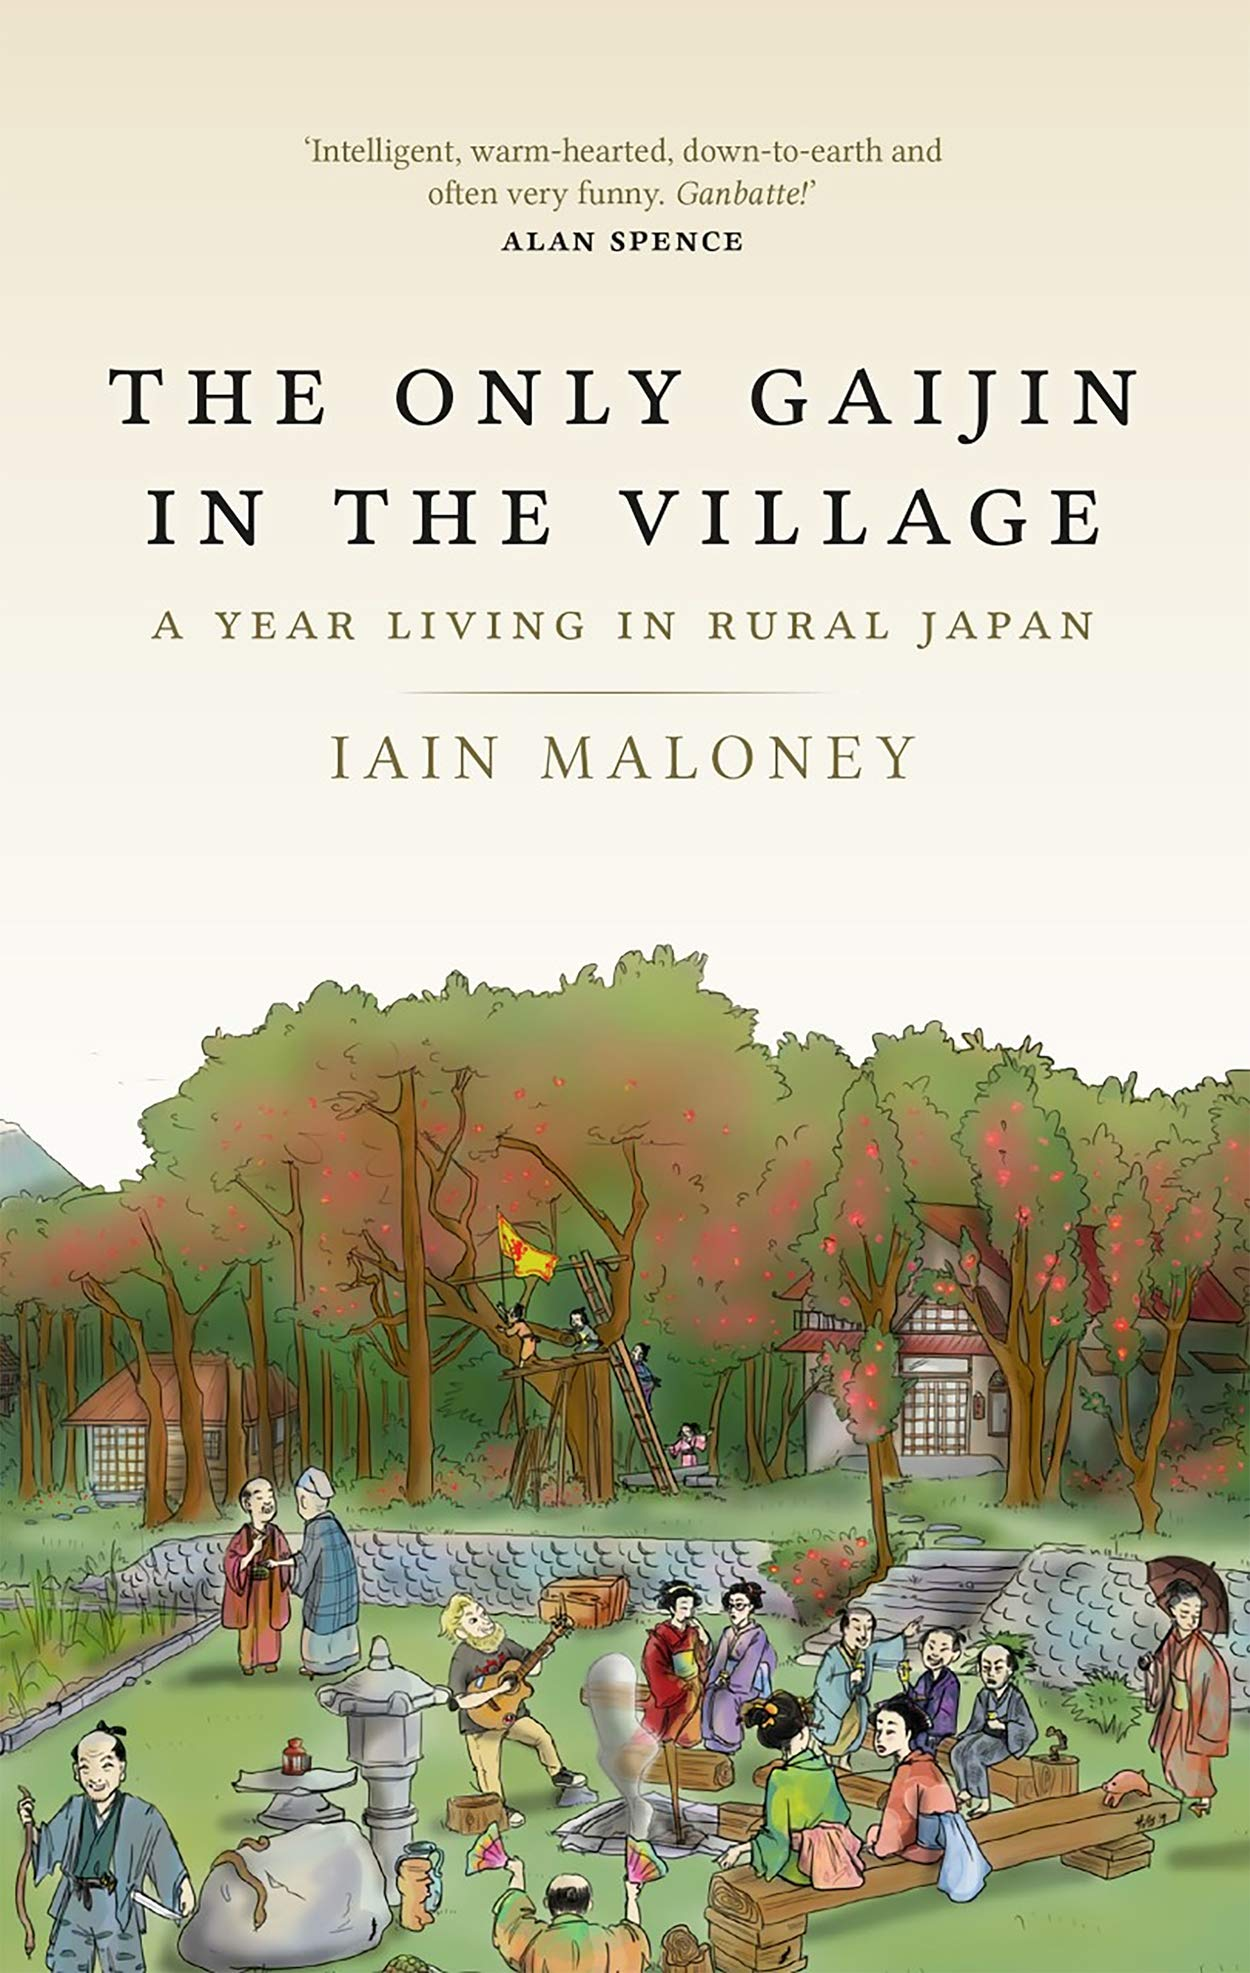 7 Japan Travel Books To Inspire Future Trips The Only Gaijin In The Village